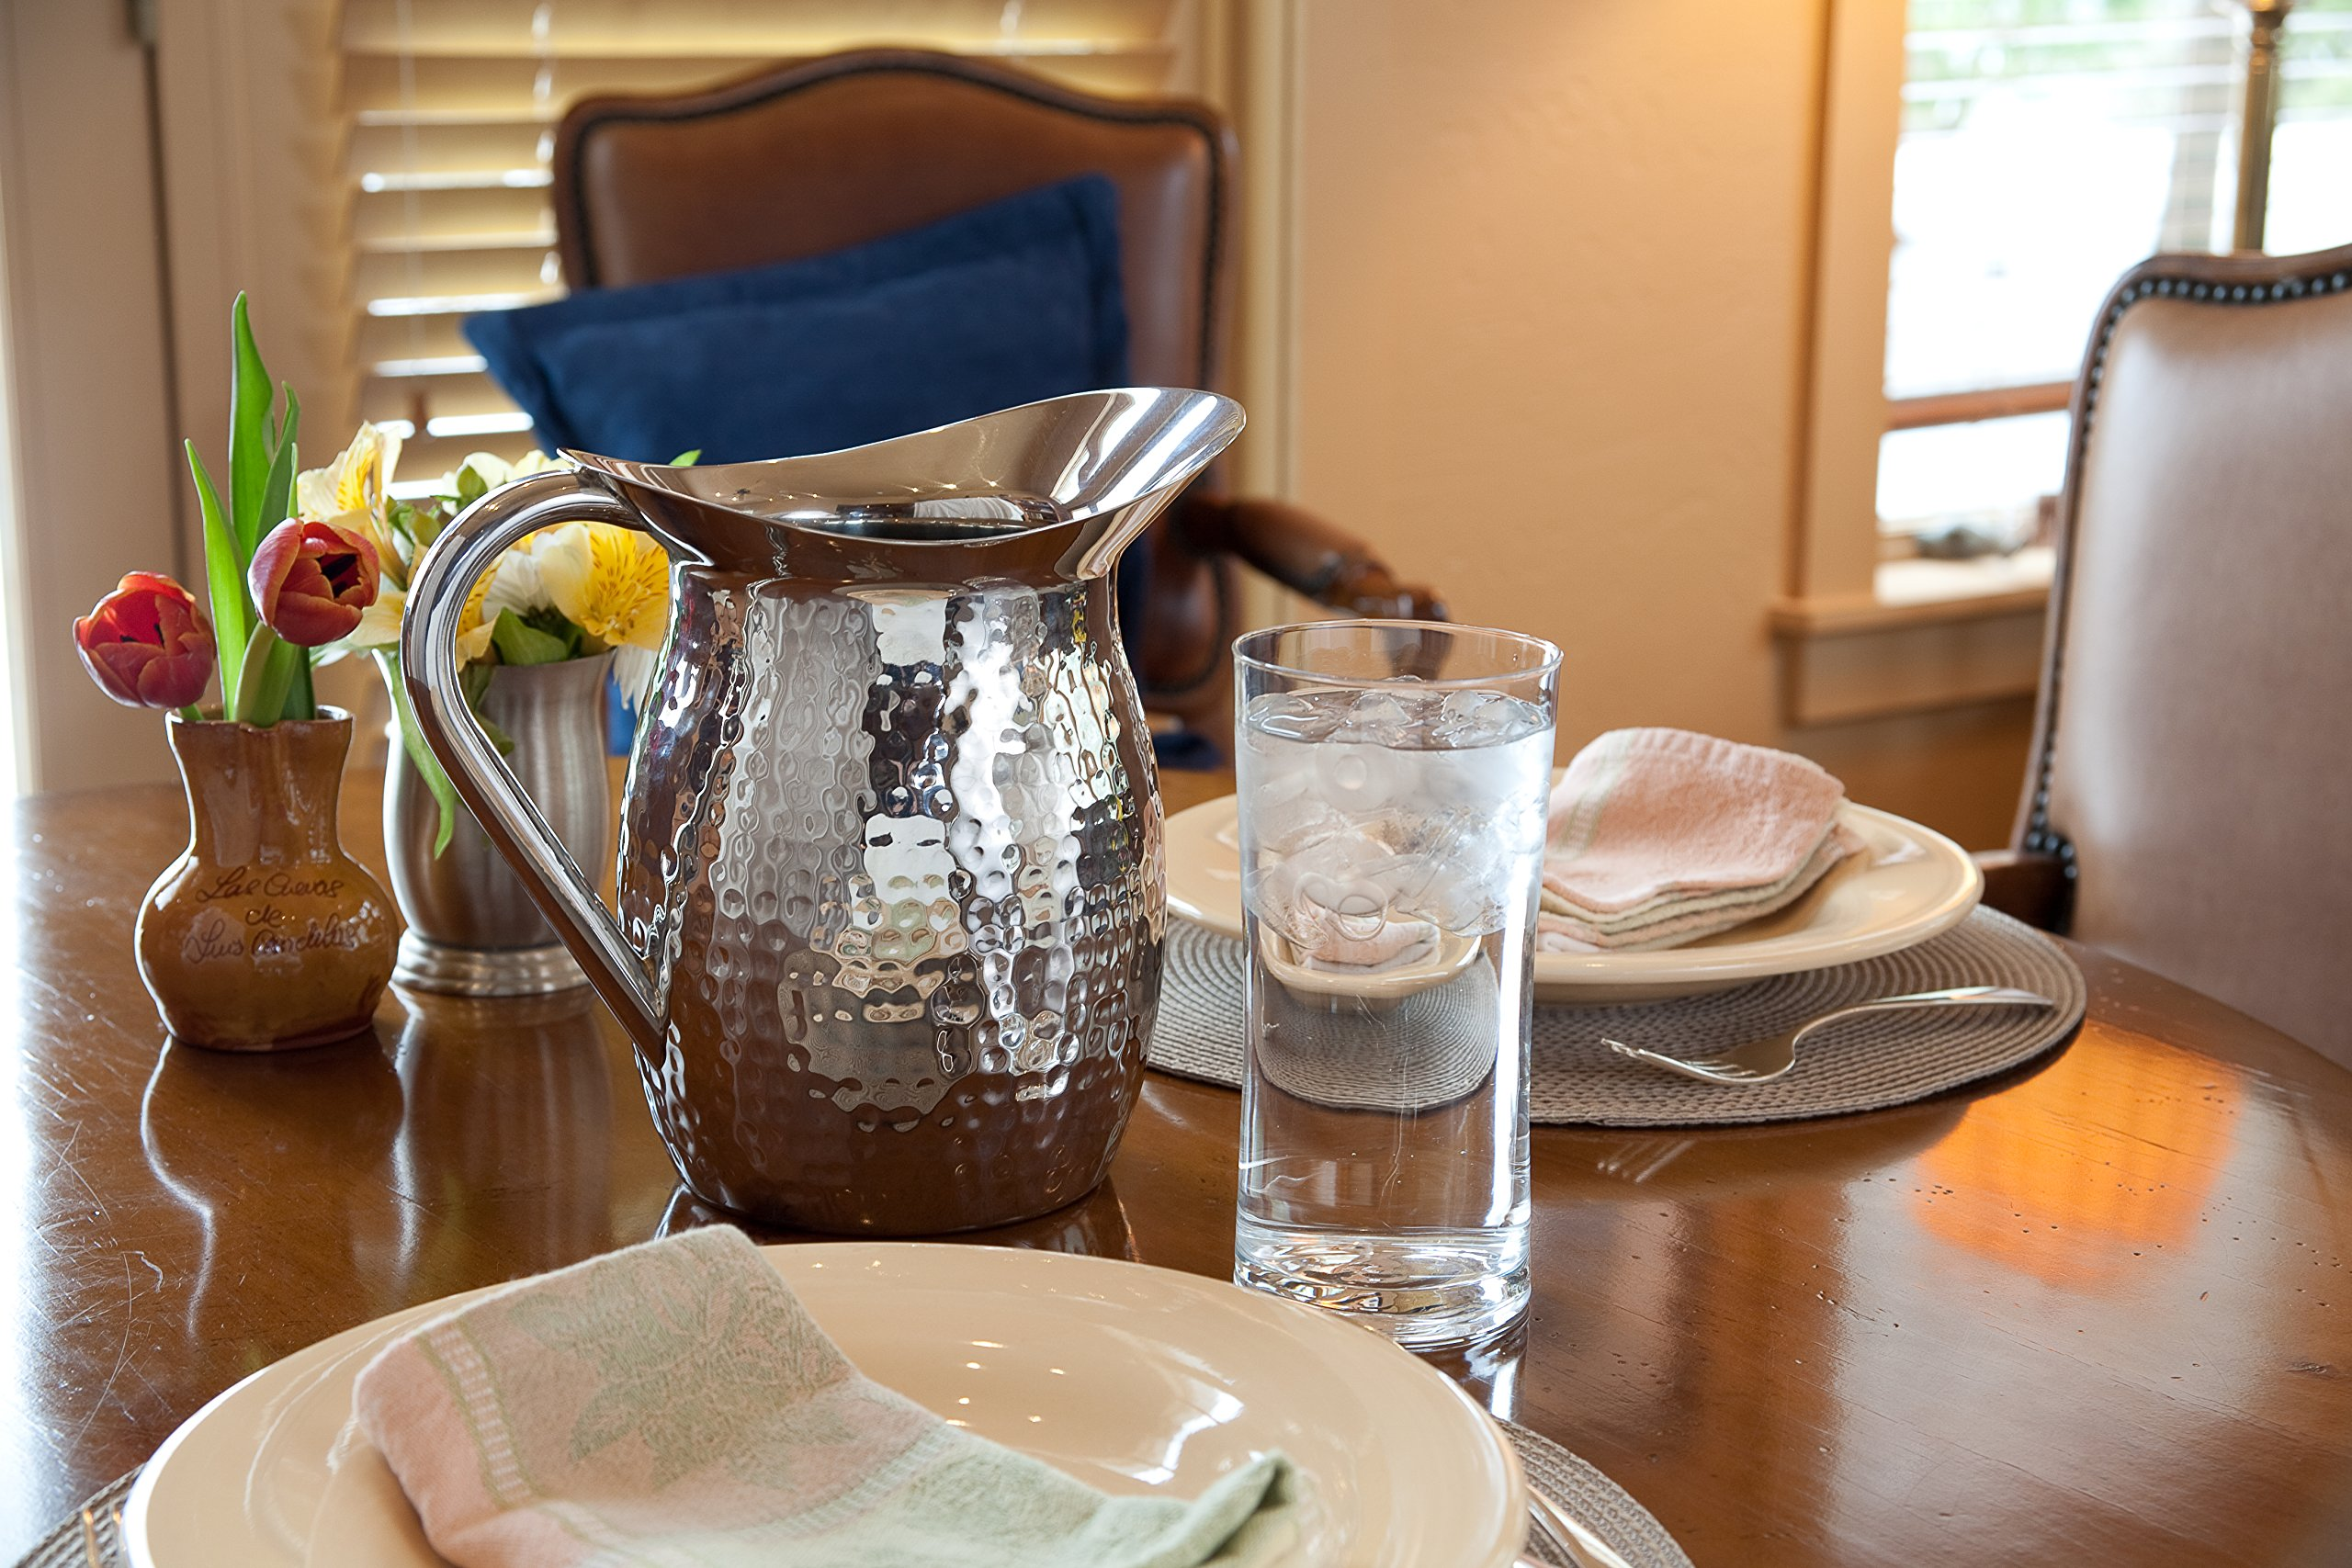 Artisan 2-Quart Double-Wall, Stainless Steel Insulated Serving Pitcher with Hammered Texture by Artisan (Image #3)